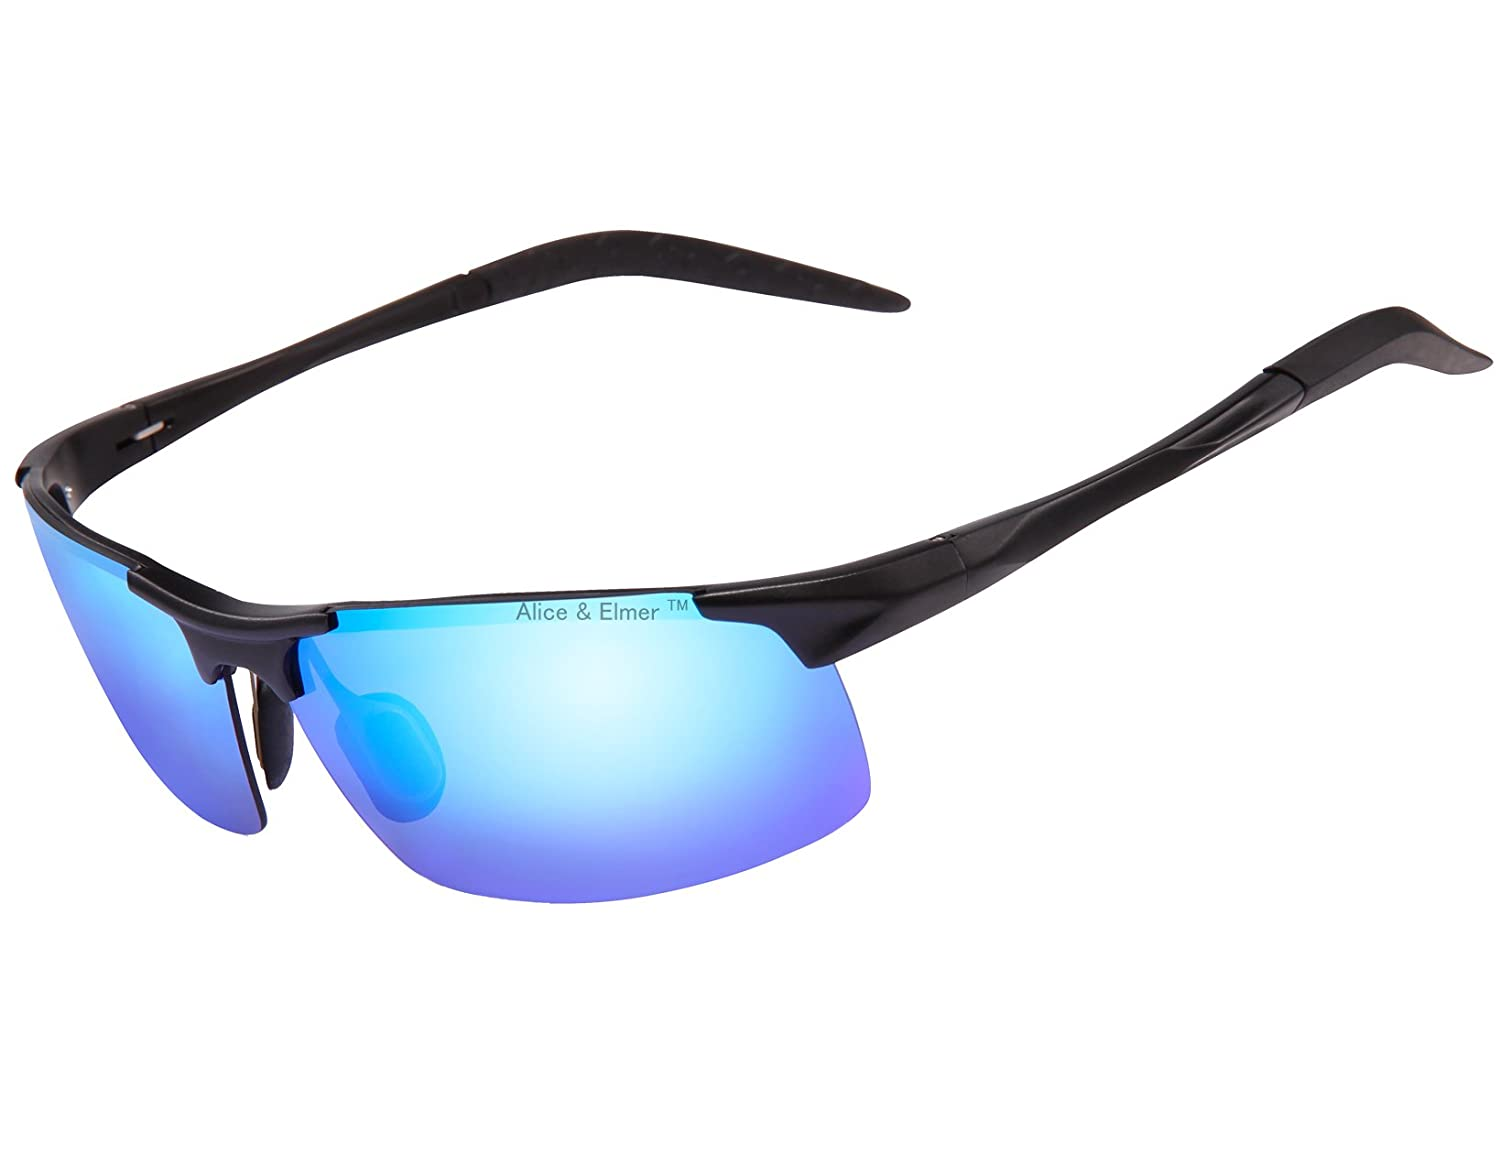 Alice & Elmer Al-Mg Ultralight Frame Polarized Sunglasses GLA8817-BLA-BLU